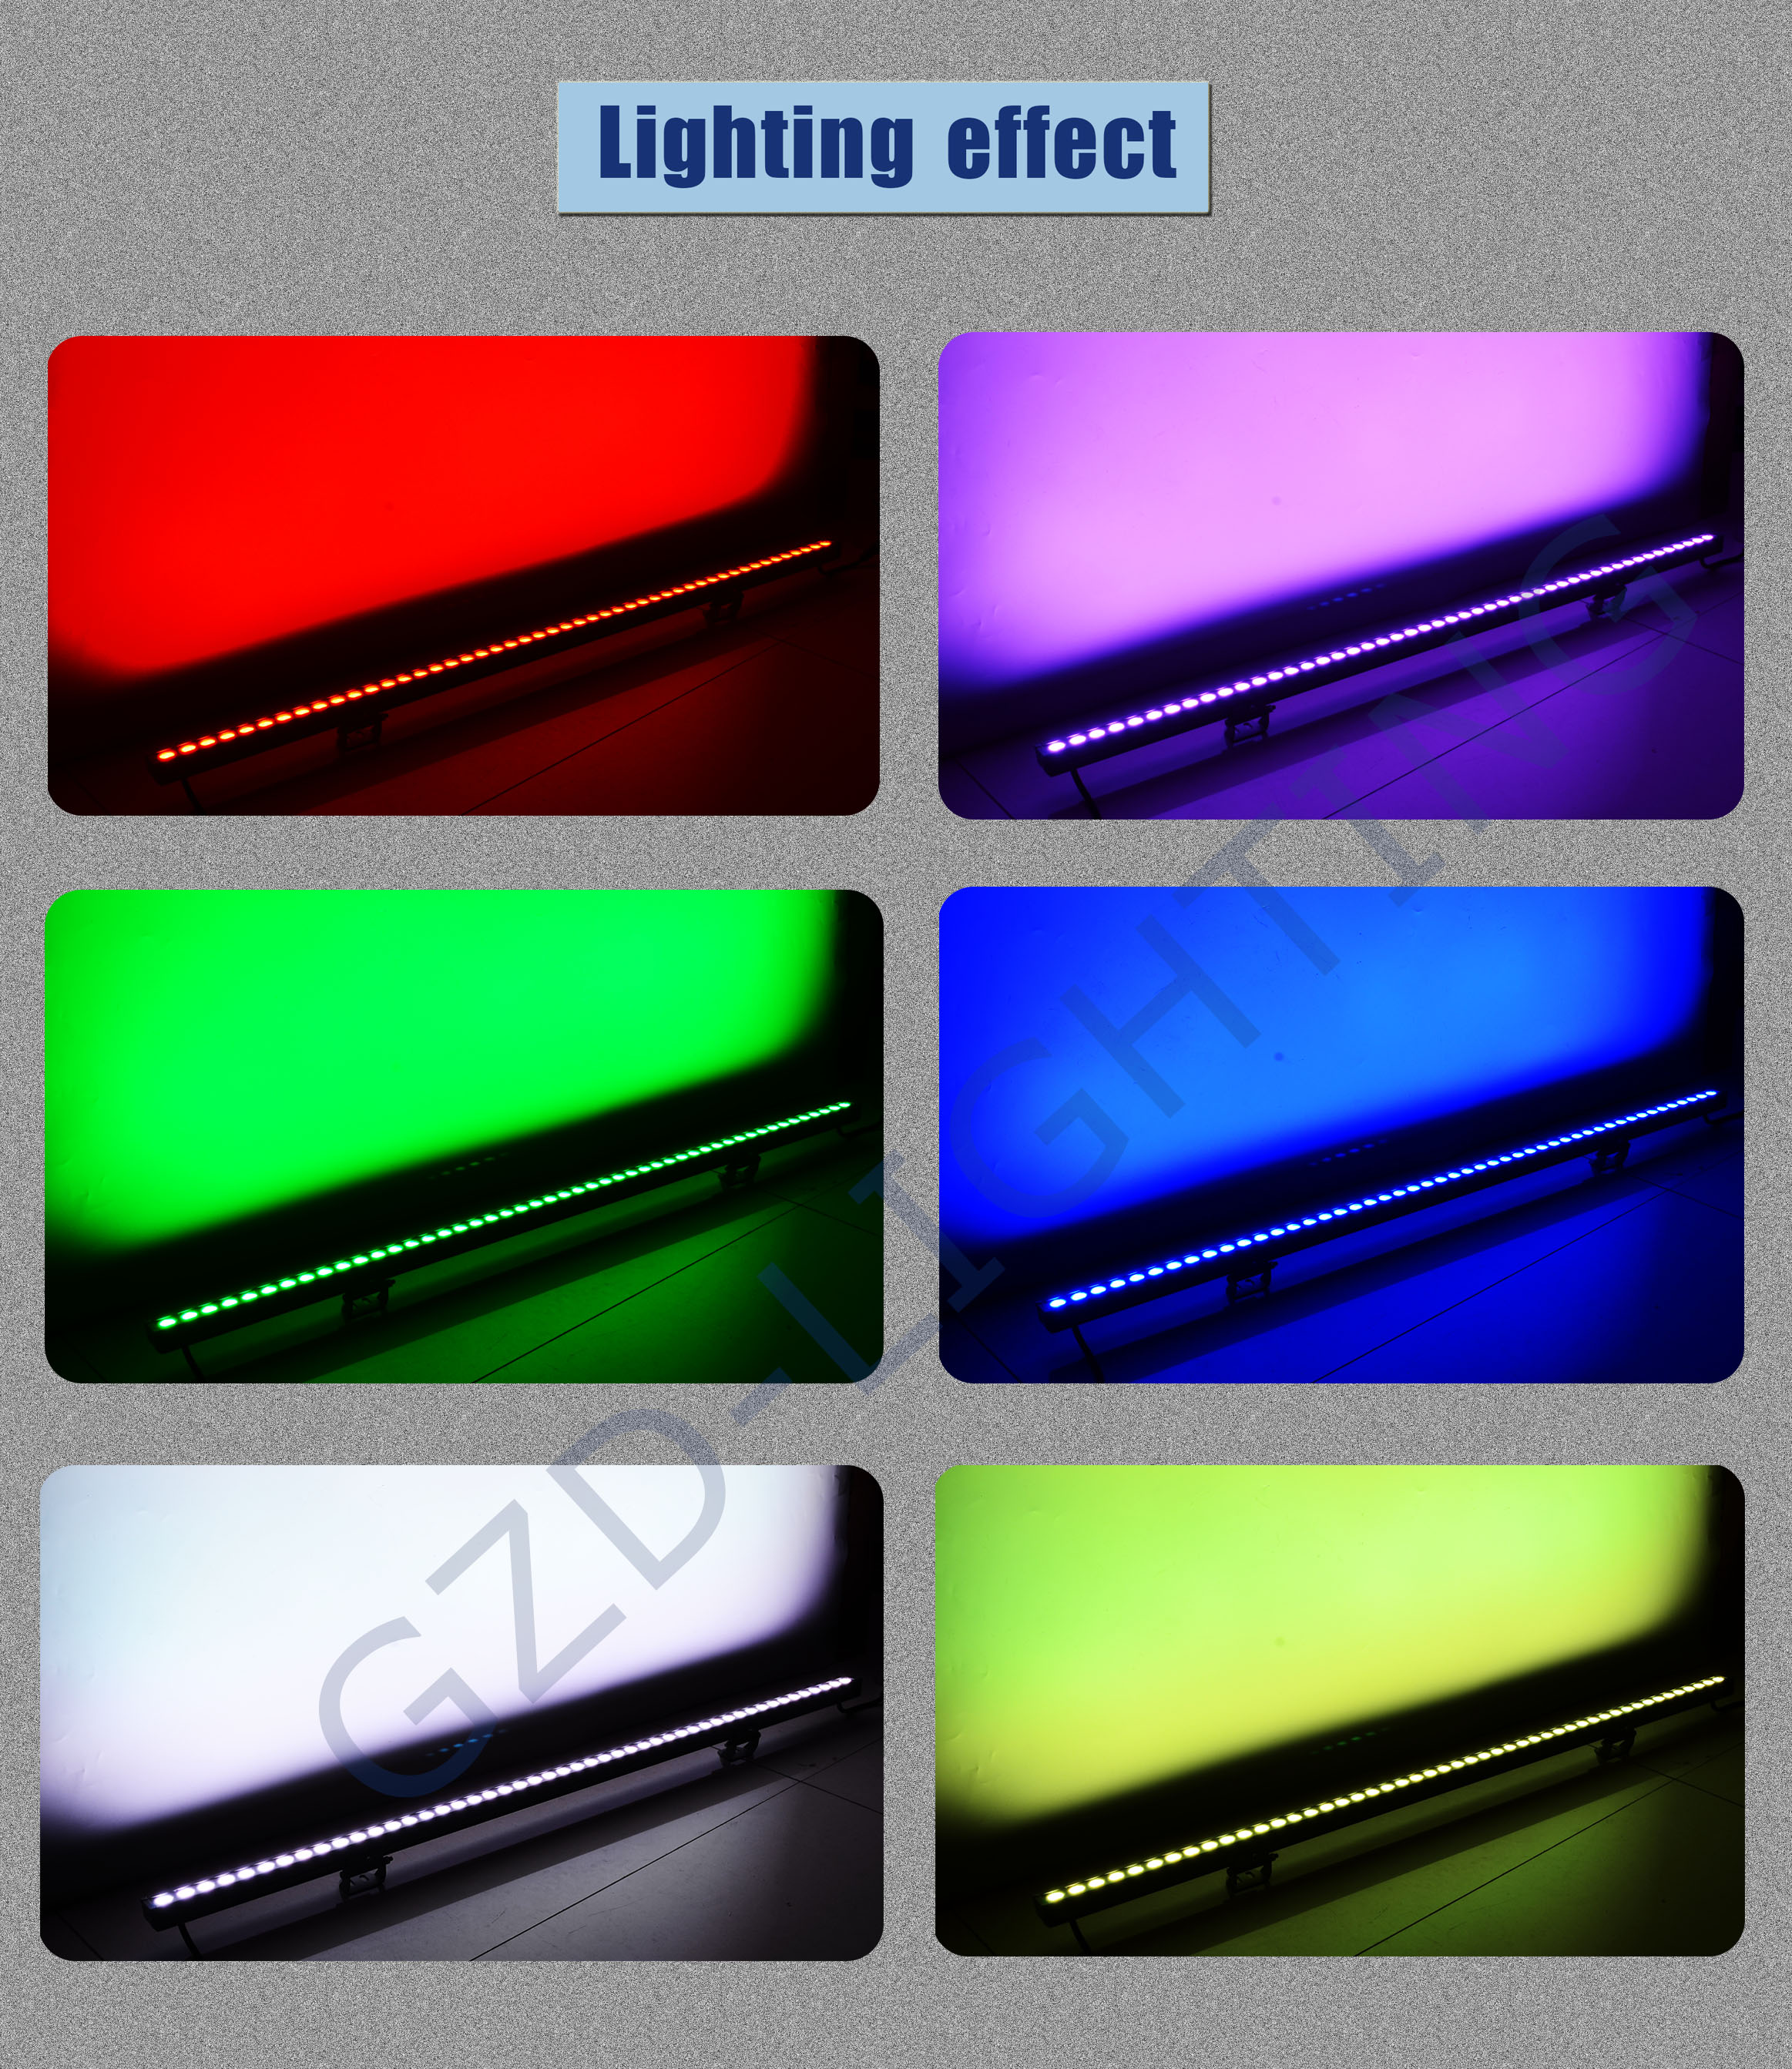 led linear light lighting effect